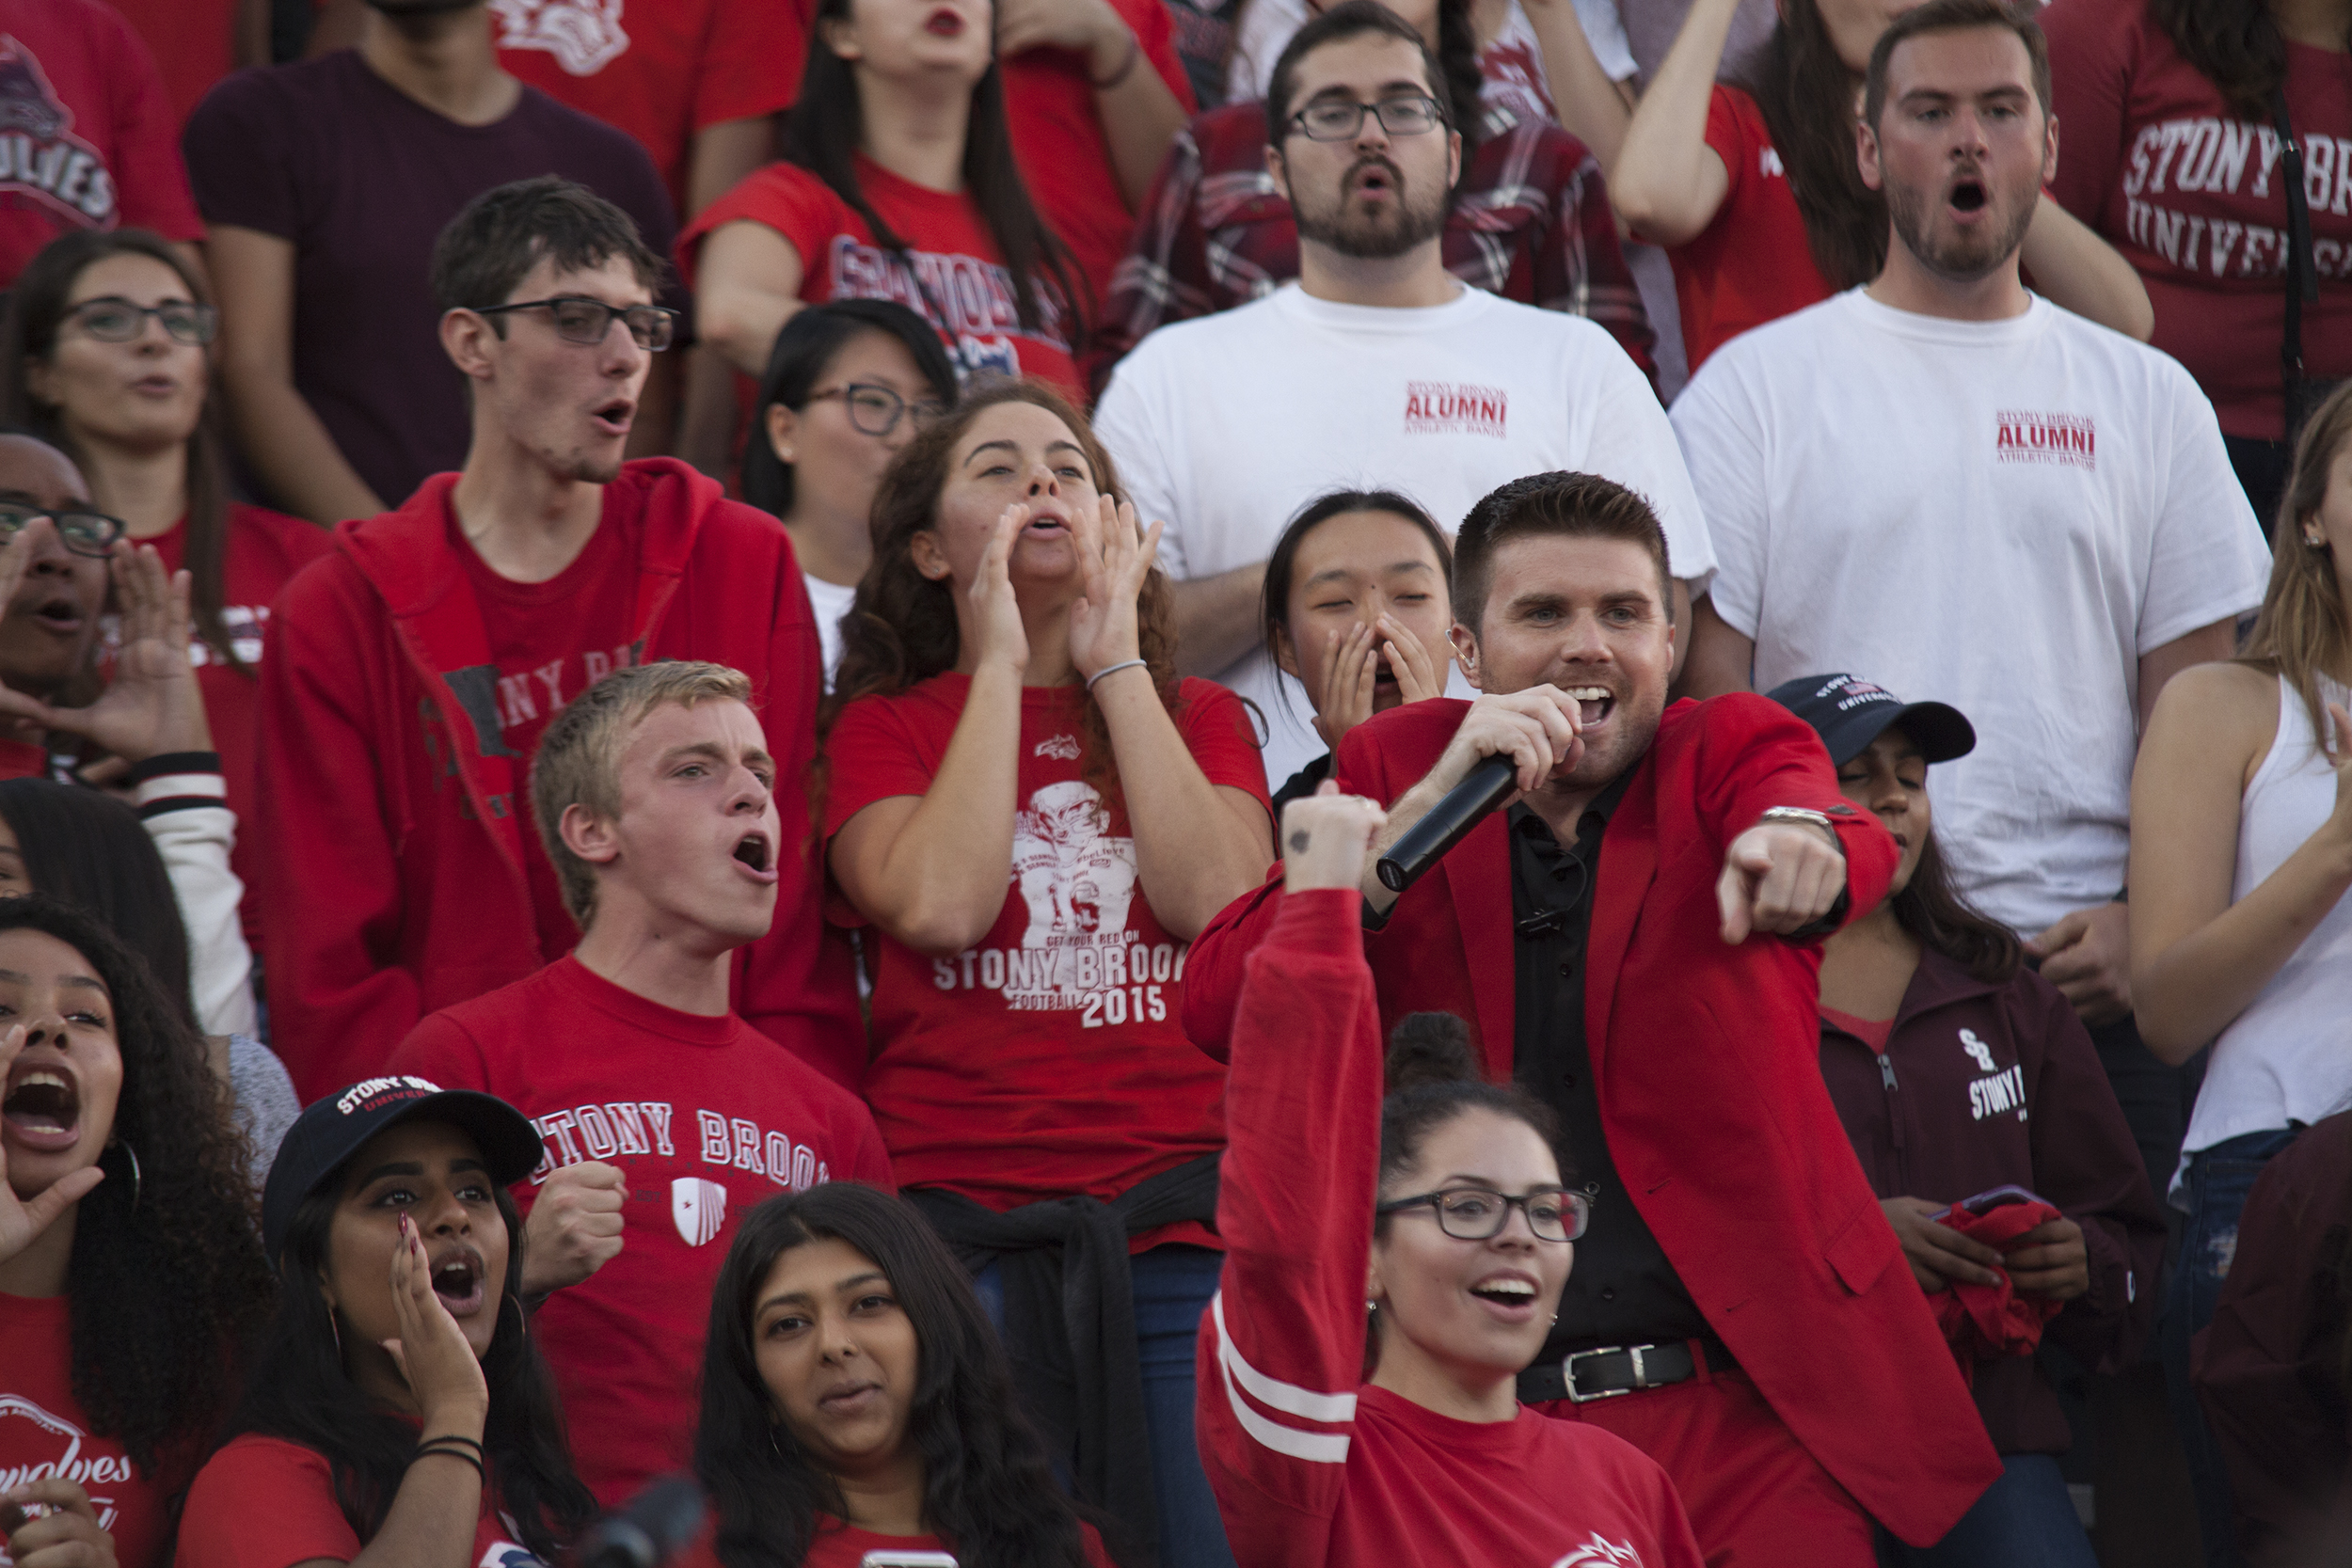 General Manager Chris Murray joins students and alumni in the stands to energize the crowd. <em>ARACELY JIMENEZ/THE STATESMAN</em>